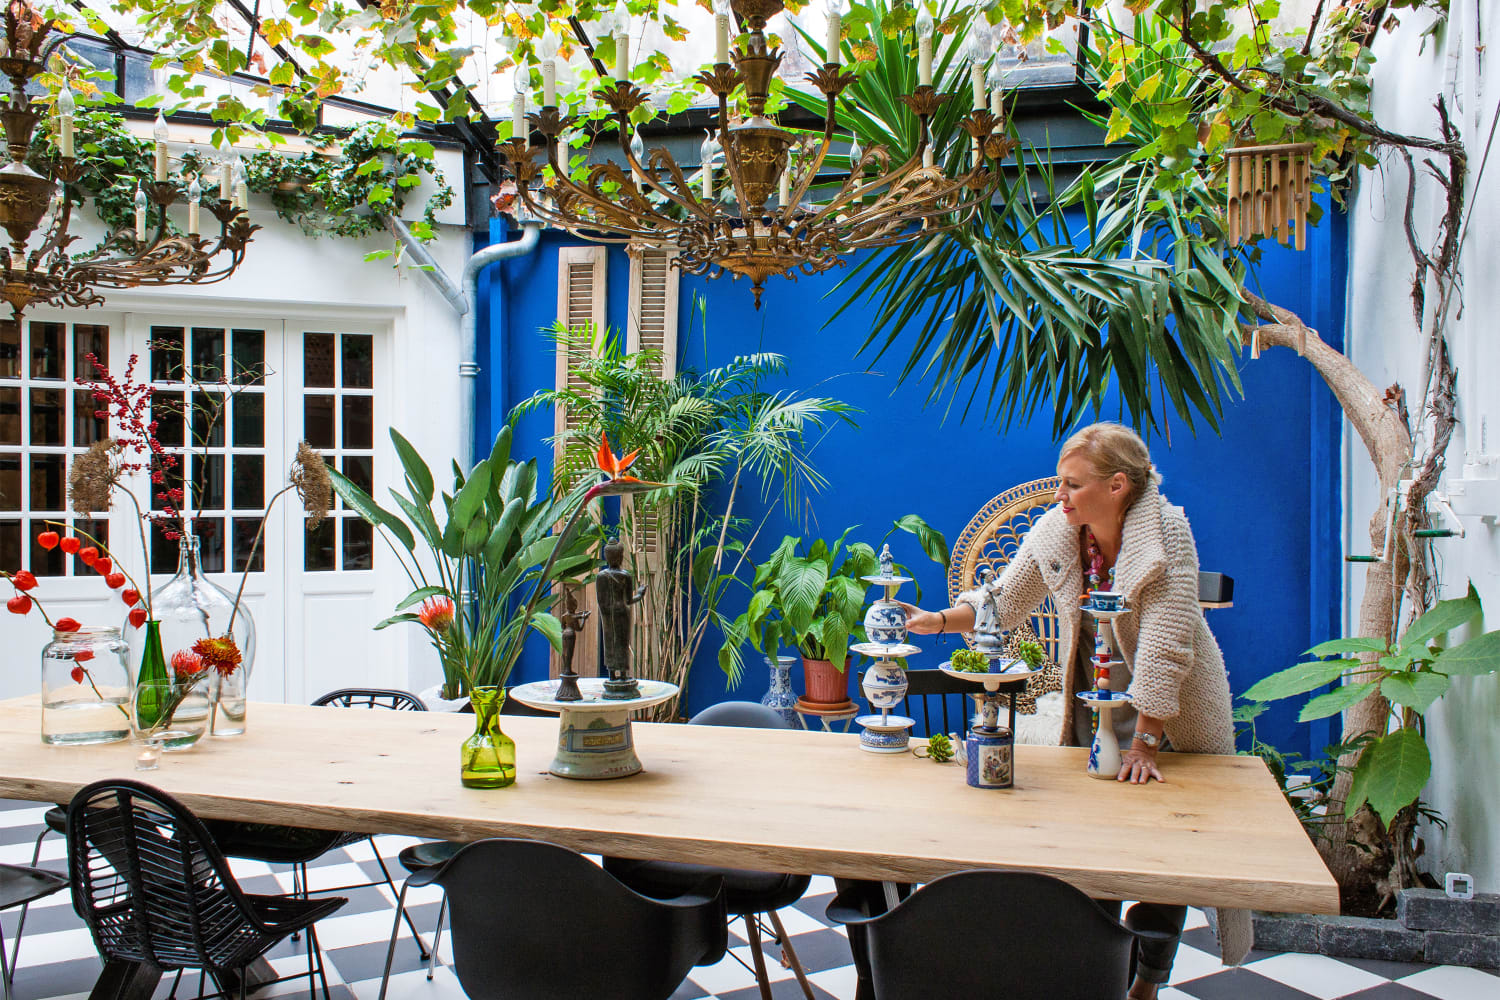 House Tour A Tropical Oasis In The Netherlands